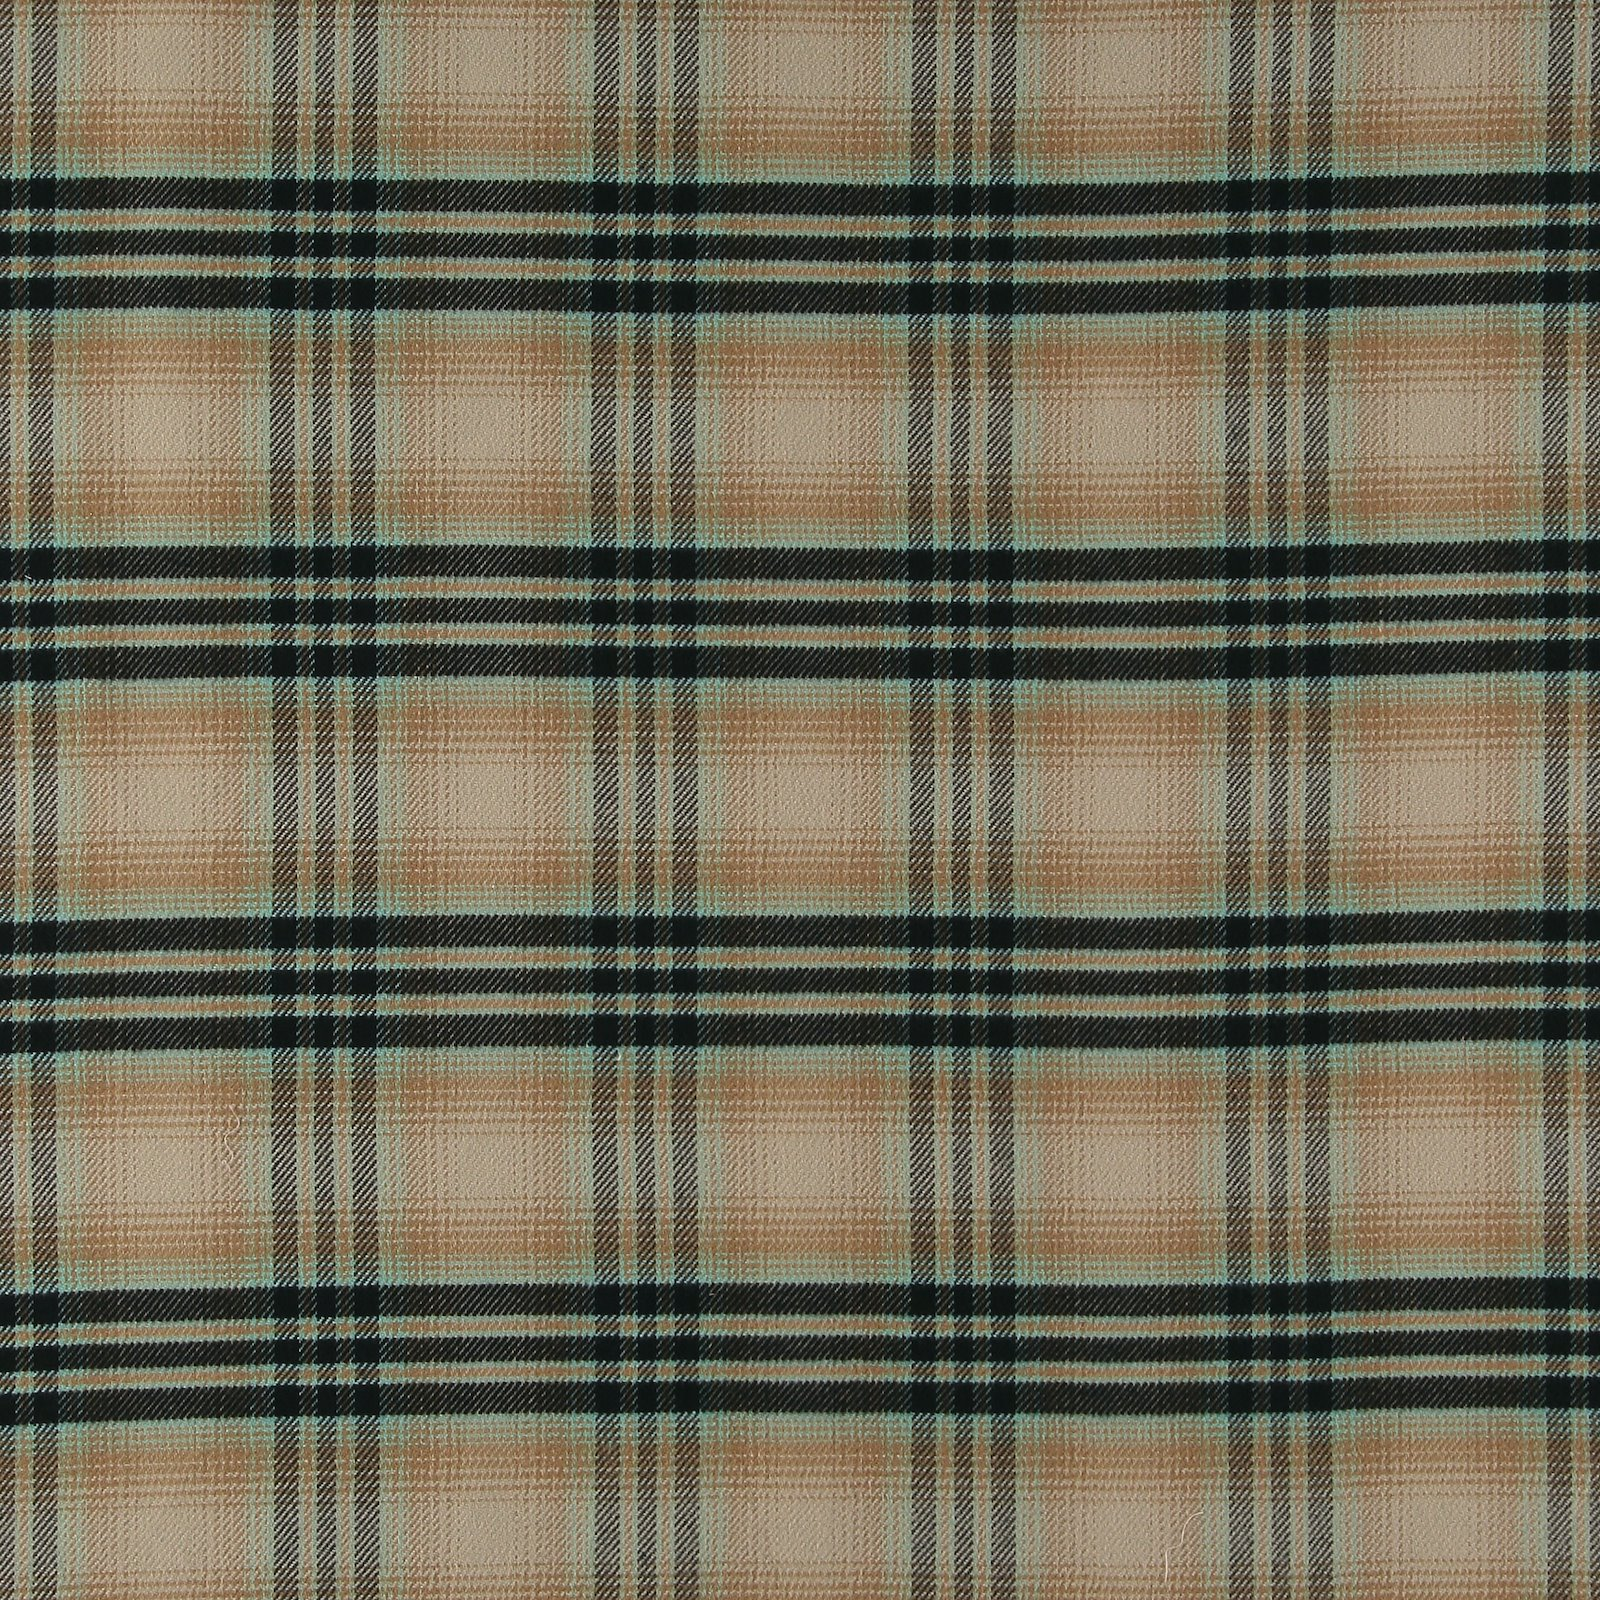 Woven YD check mint/sand brushed surface 400320_pack_sp